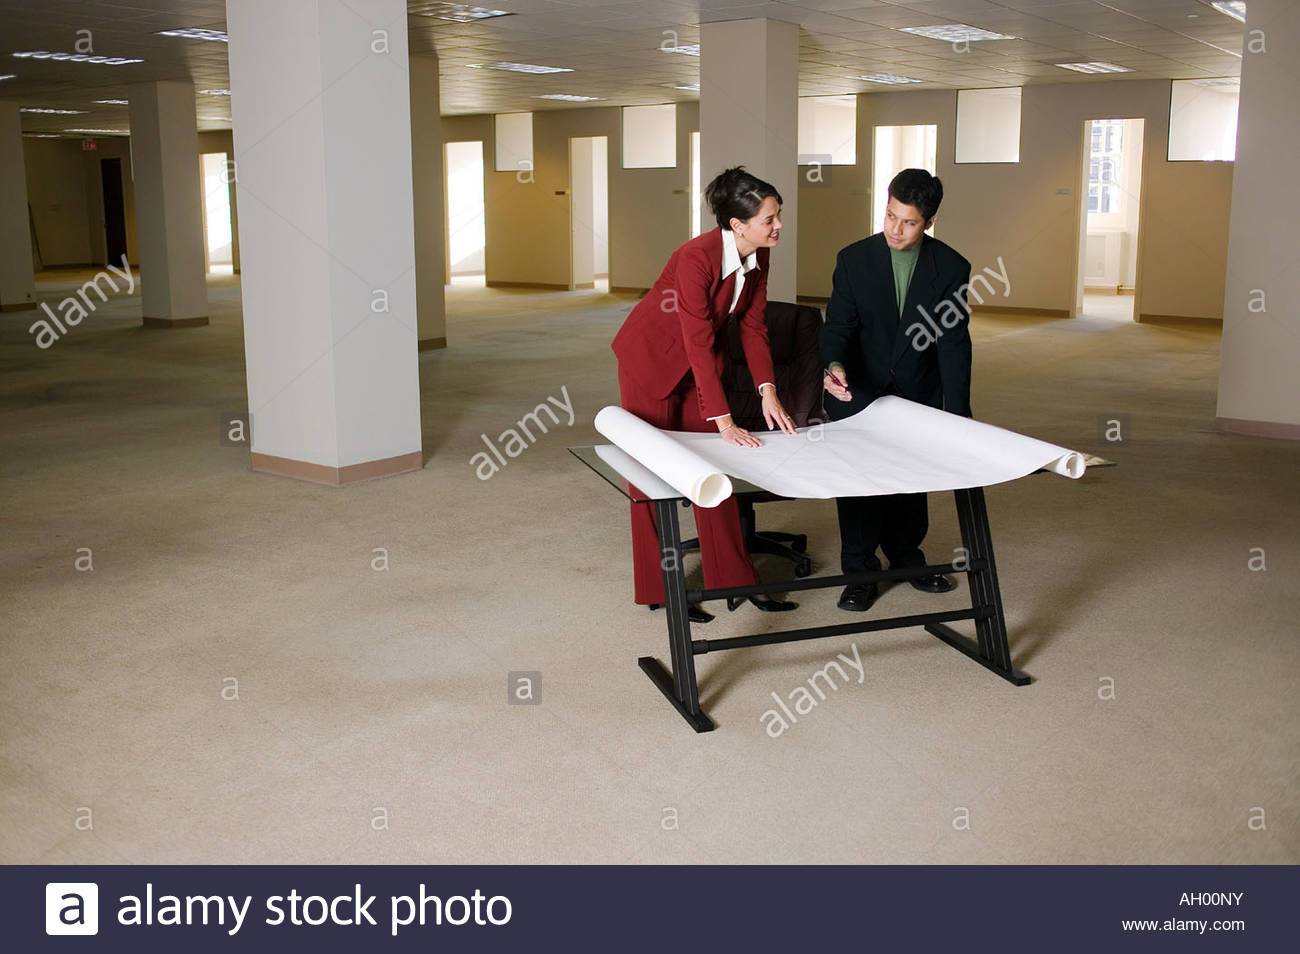 Businesspeople looking at blueprints in empty office - Stock Image